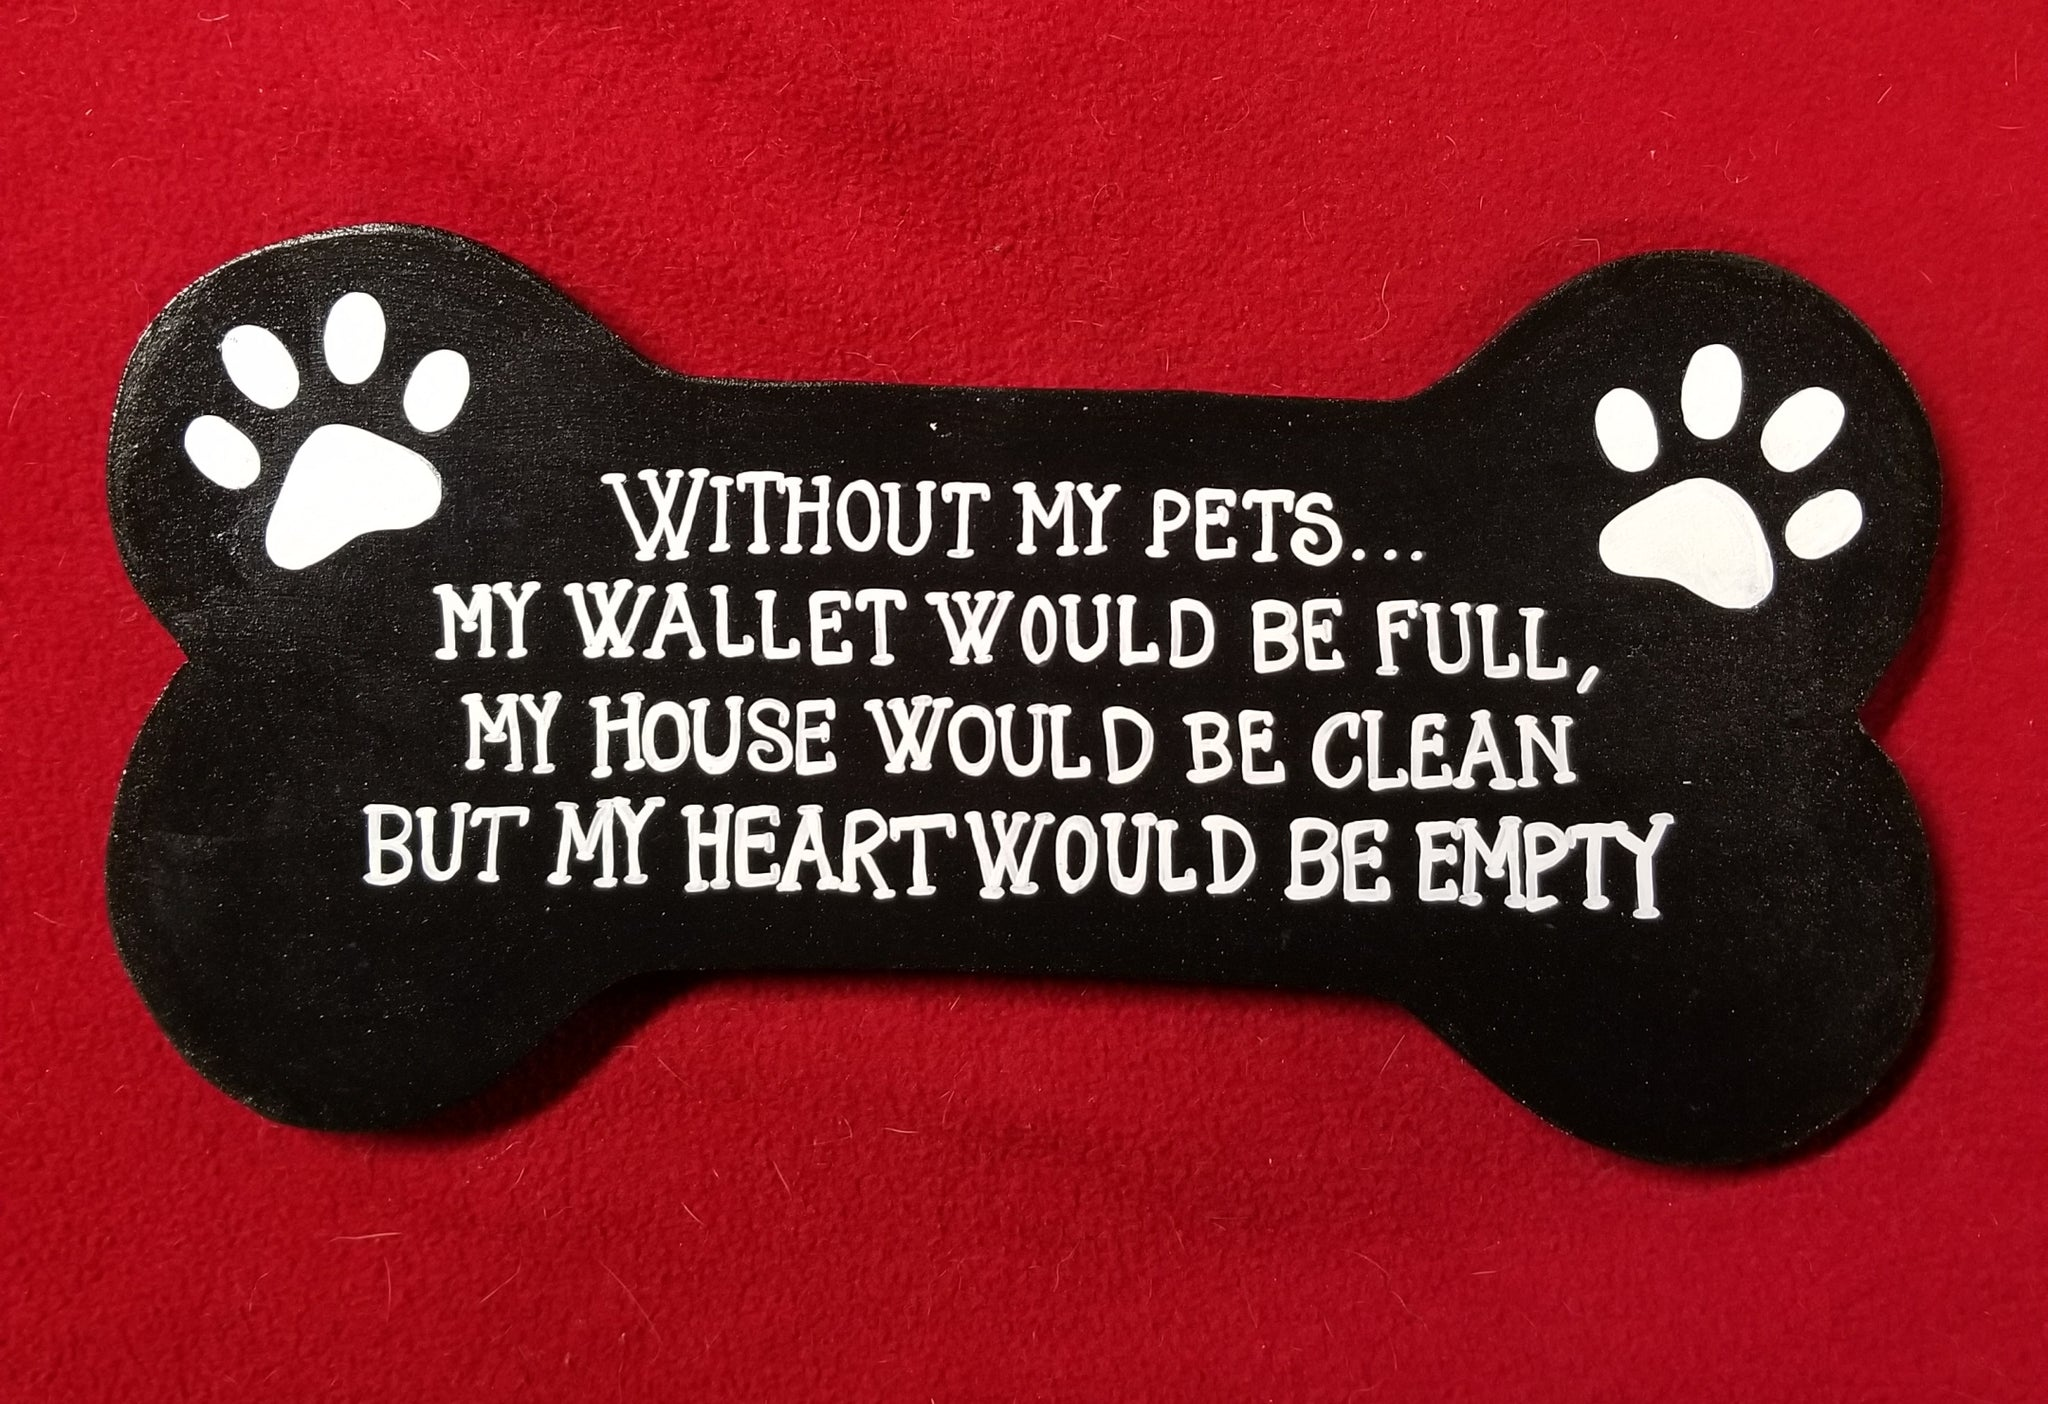 Without my pets...my wallet would be full, my house would be clean but my heart would be empty